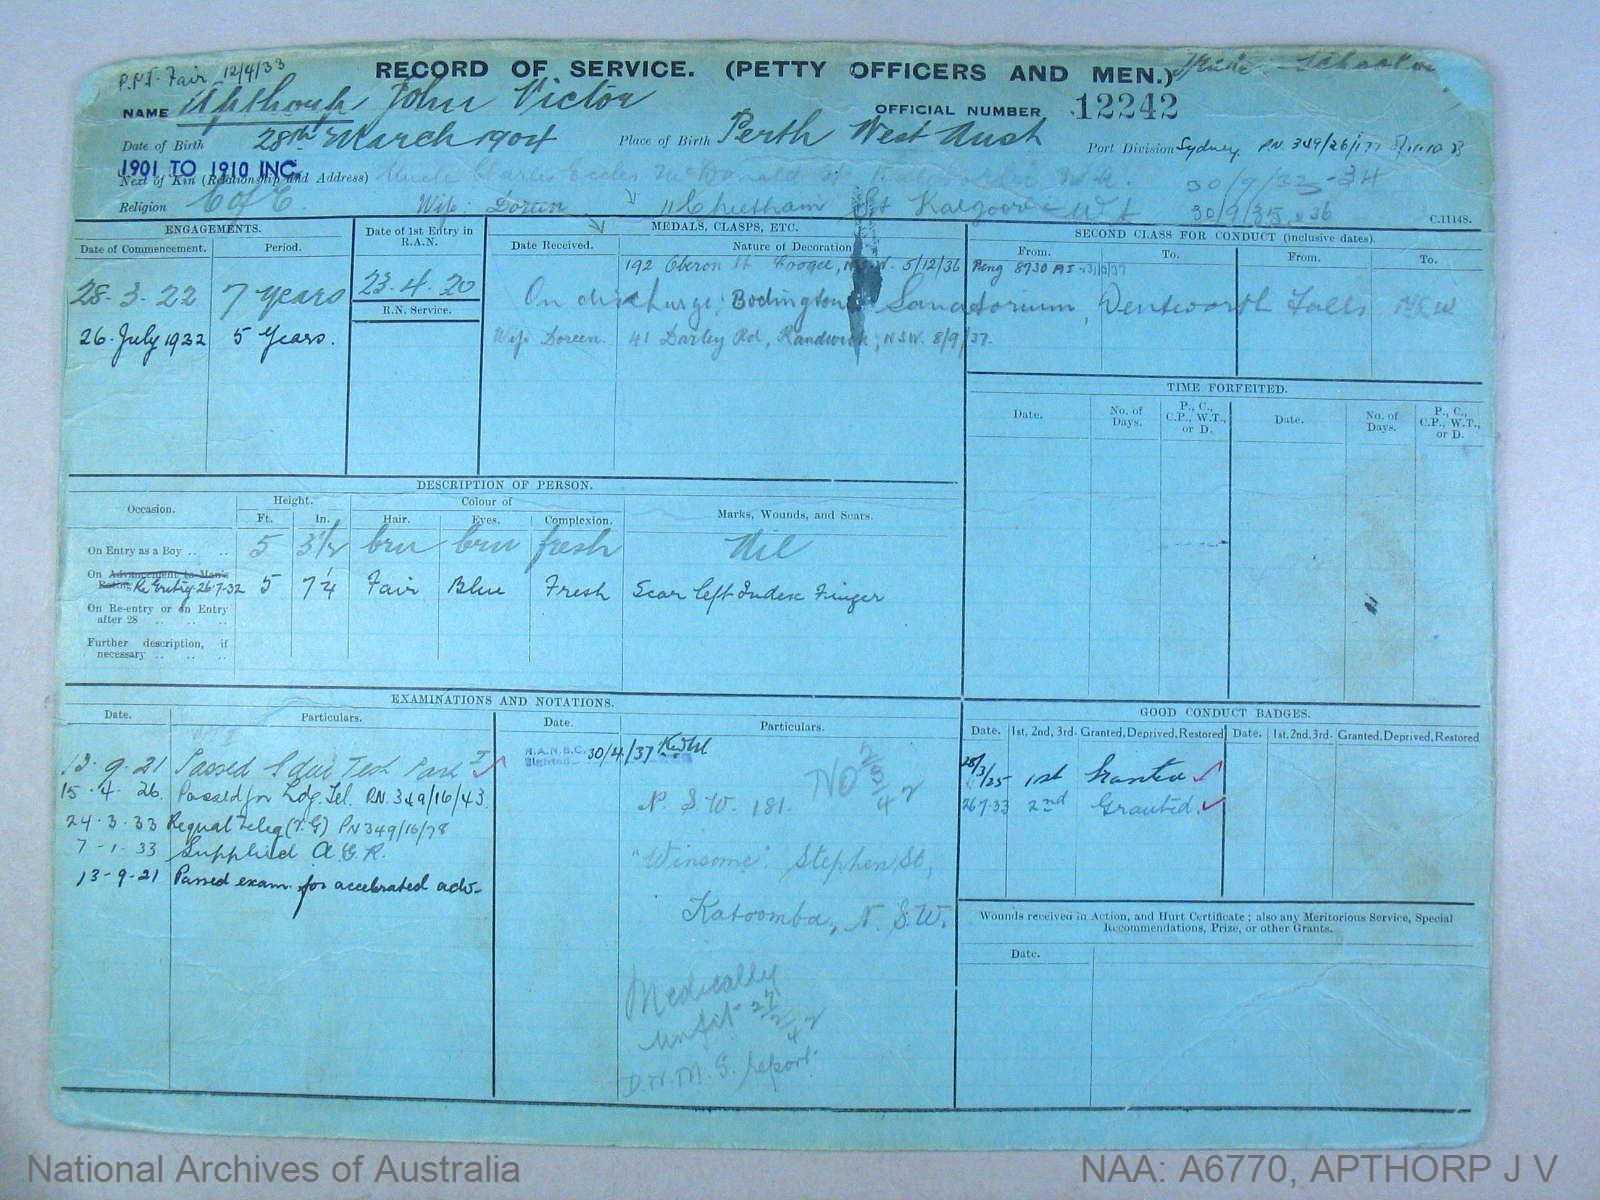 APTHORP JOHN VICTOR : Service Number - 12242 : Date of birth - 28 Mar 1904 : Place of birth - PERTH WA : Place of enlistment - SYDNEY : Next of Kin - APTHORP DOREEN